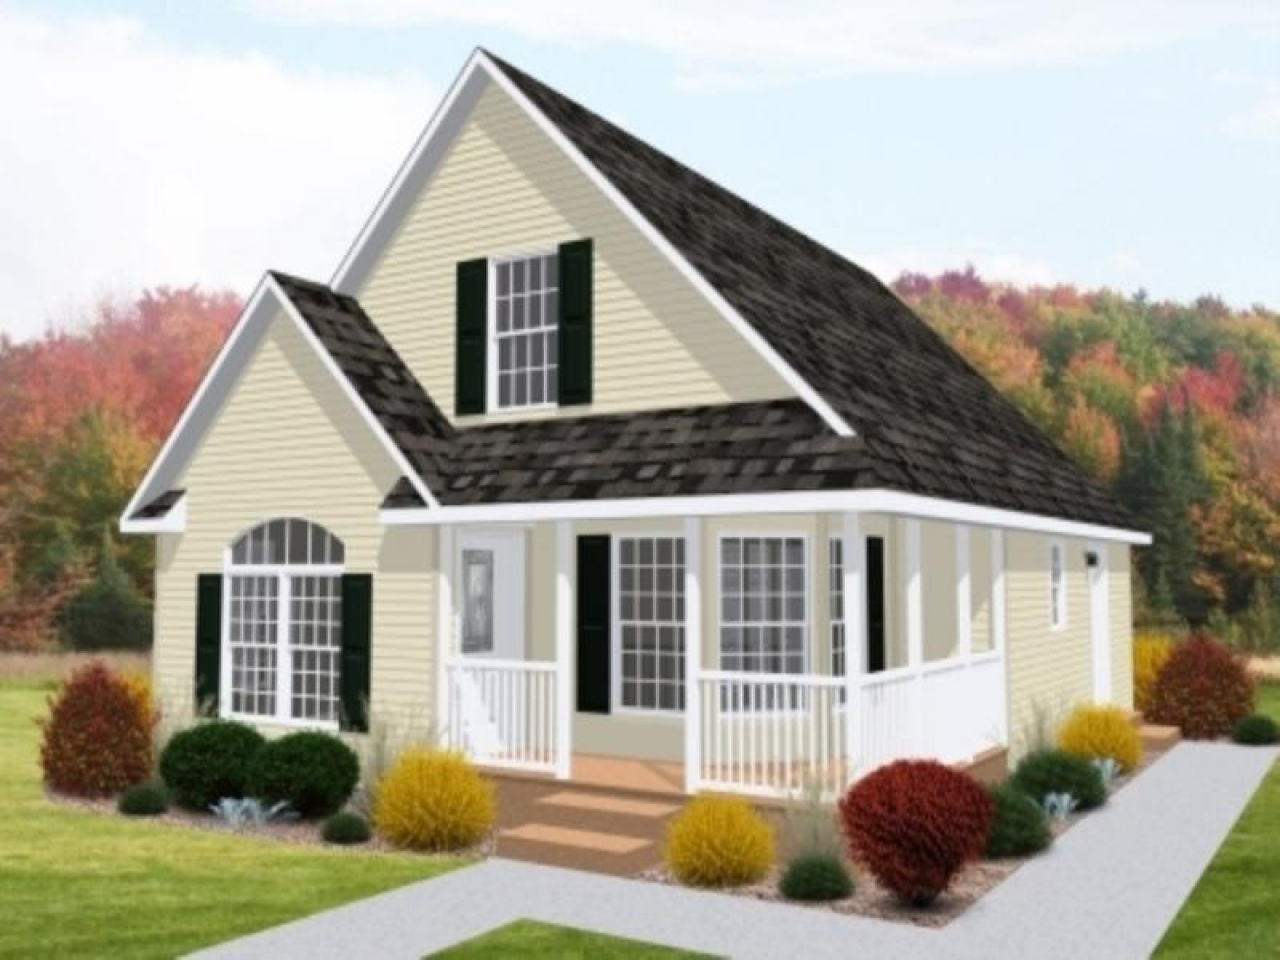 Photos And Floor Plans For A Modular Homes on construction for homes, modules for homes, modular floor plans for offices,